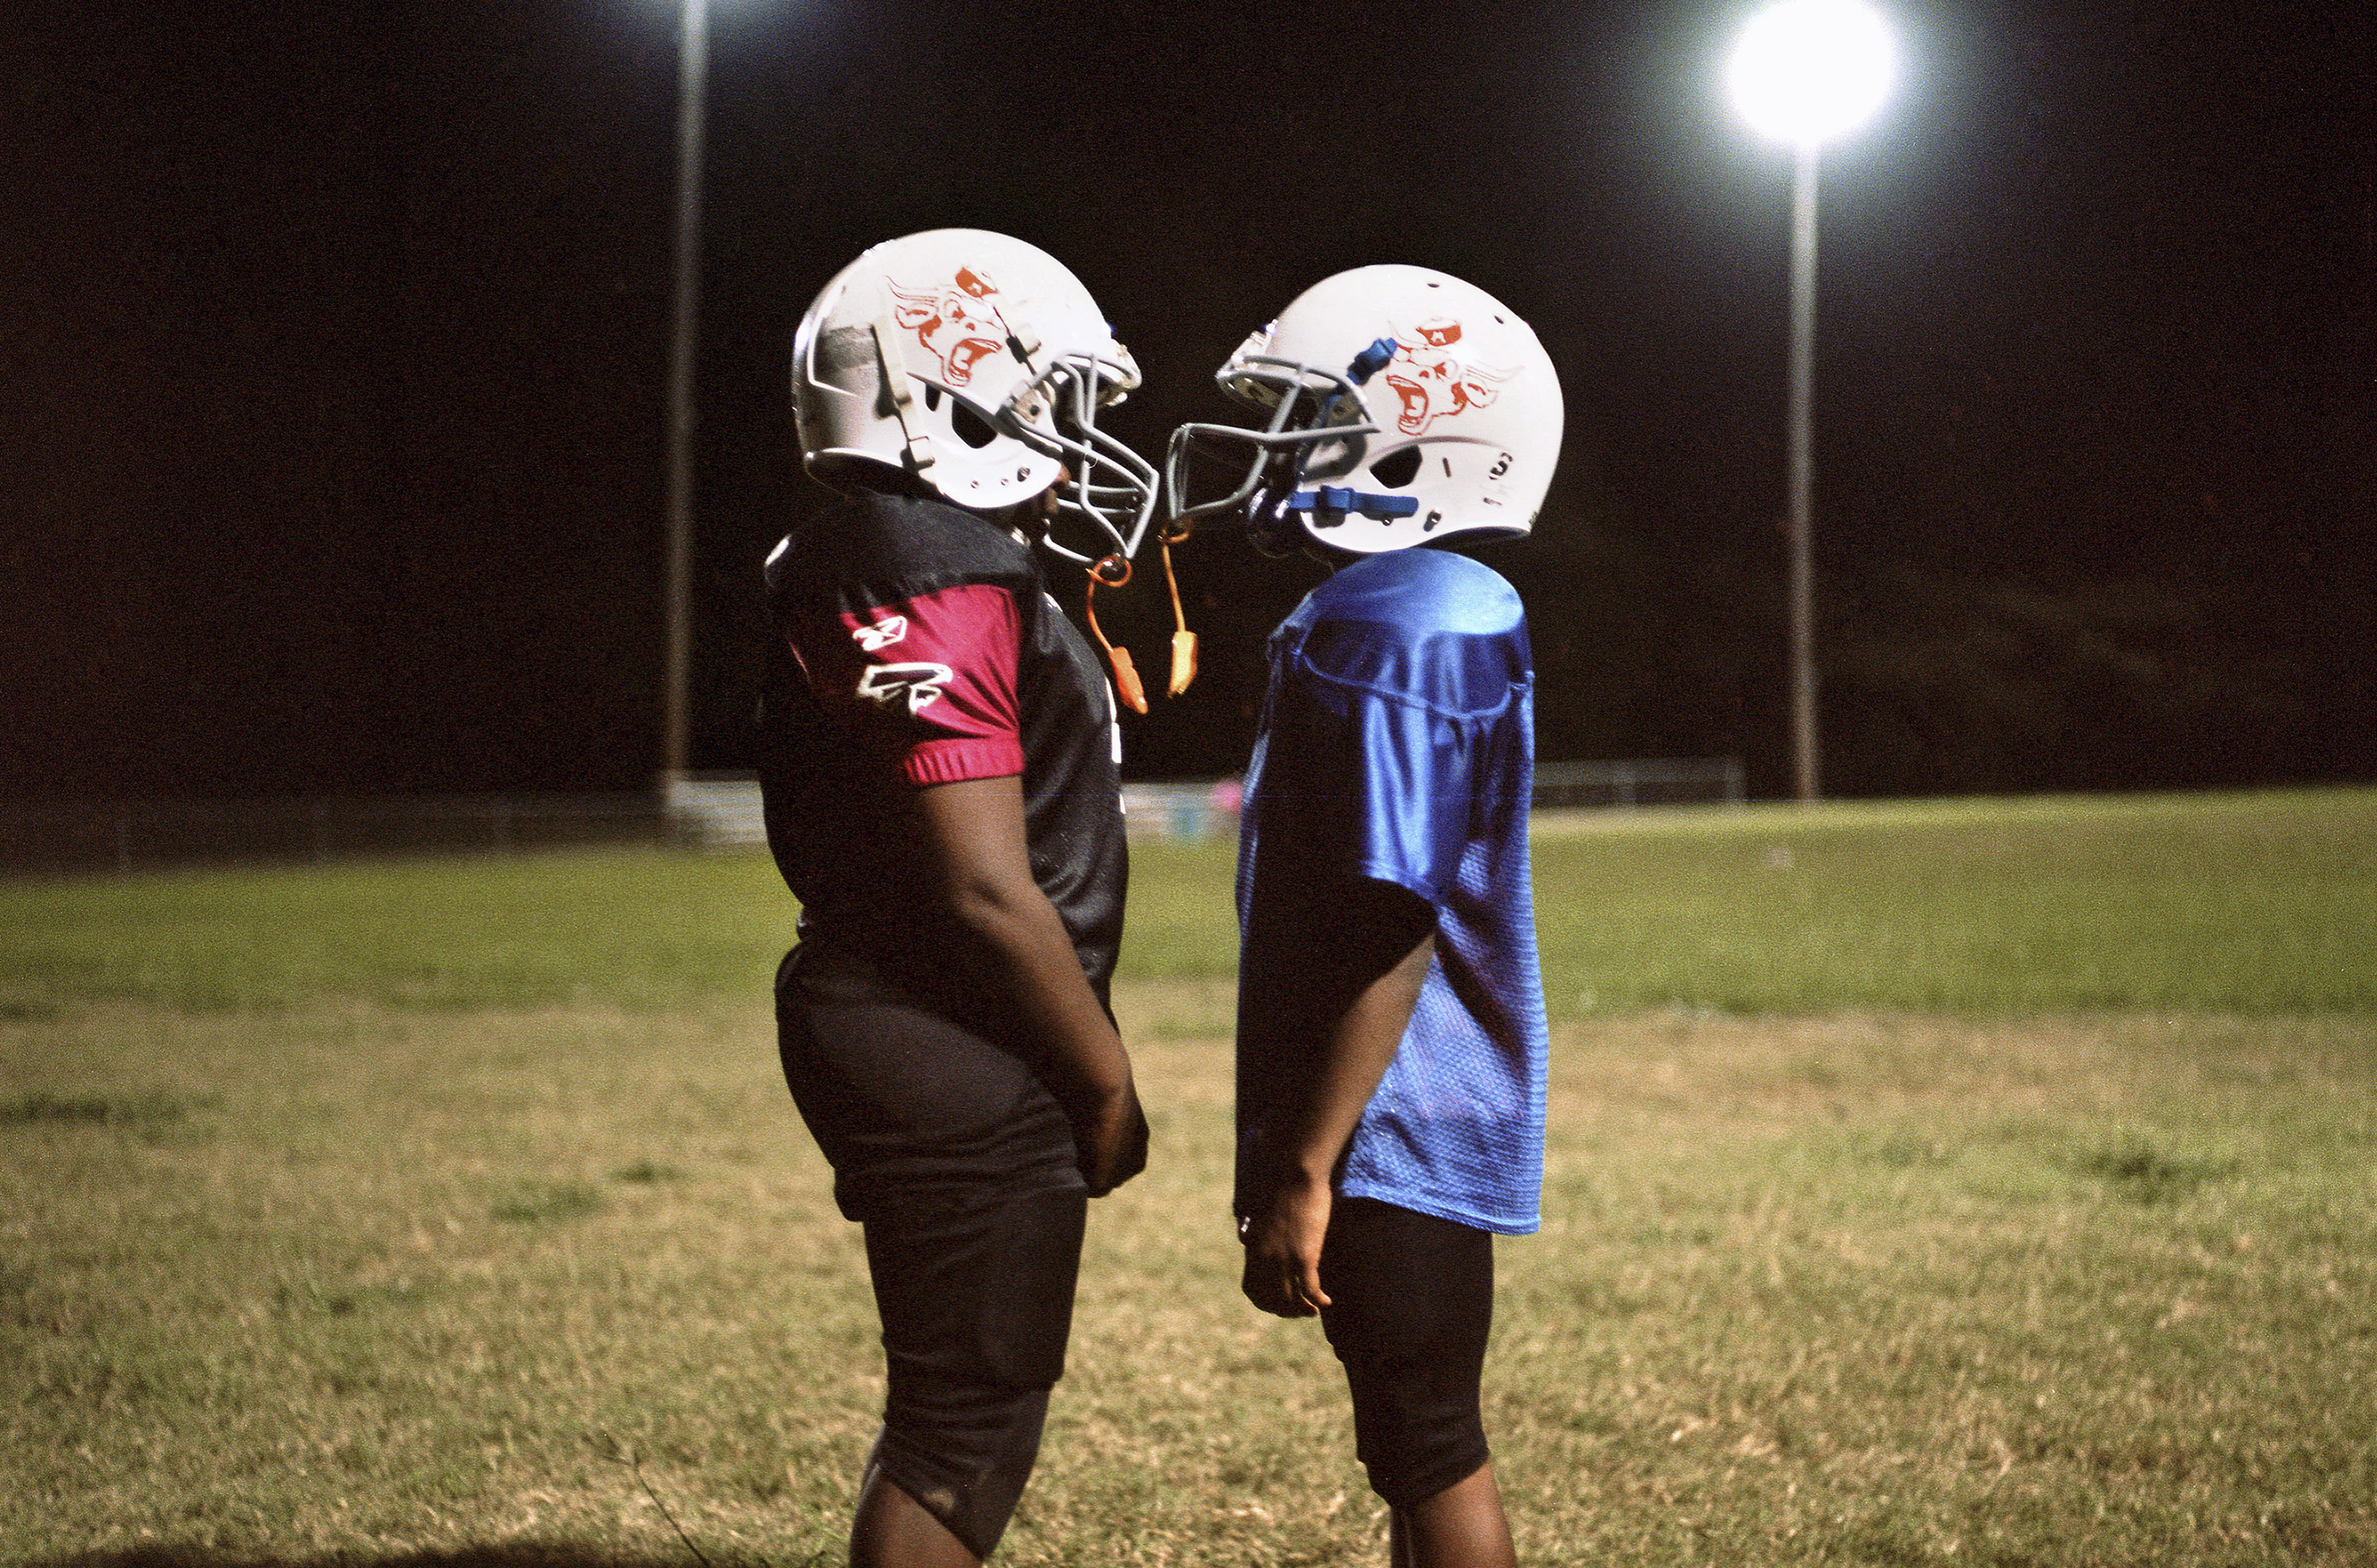 Football Affects Youth Brain >> Study Links Youth Football To Greater Risk Of Later Health Problems